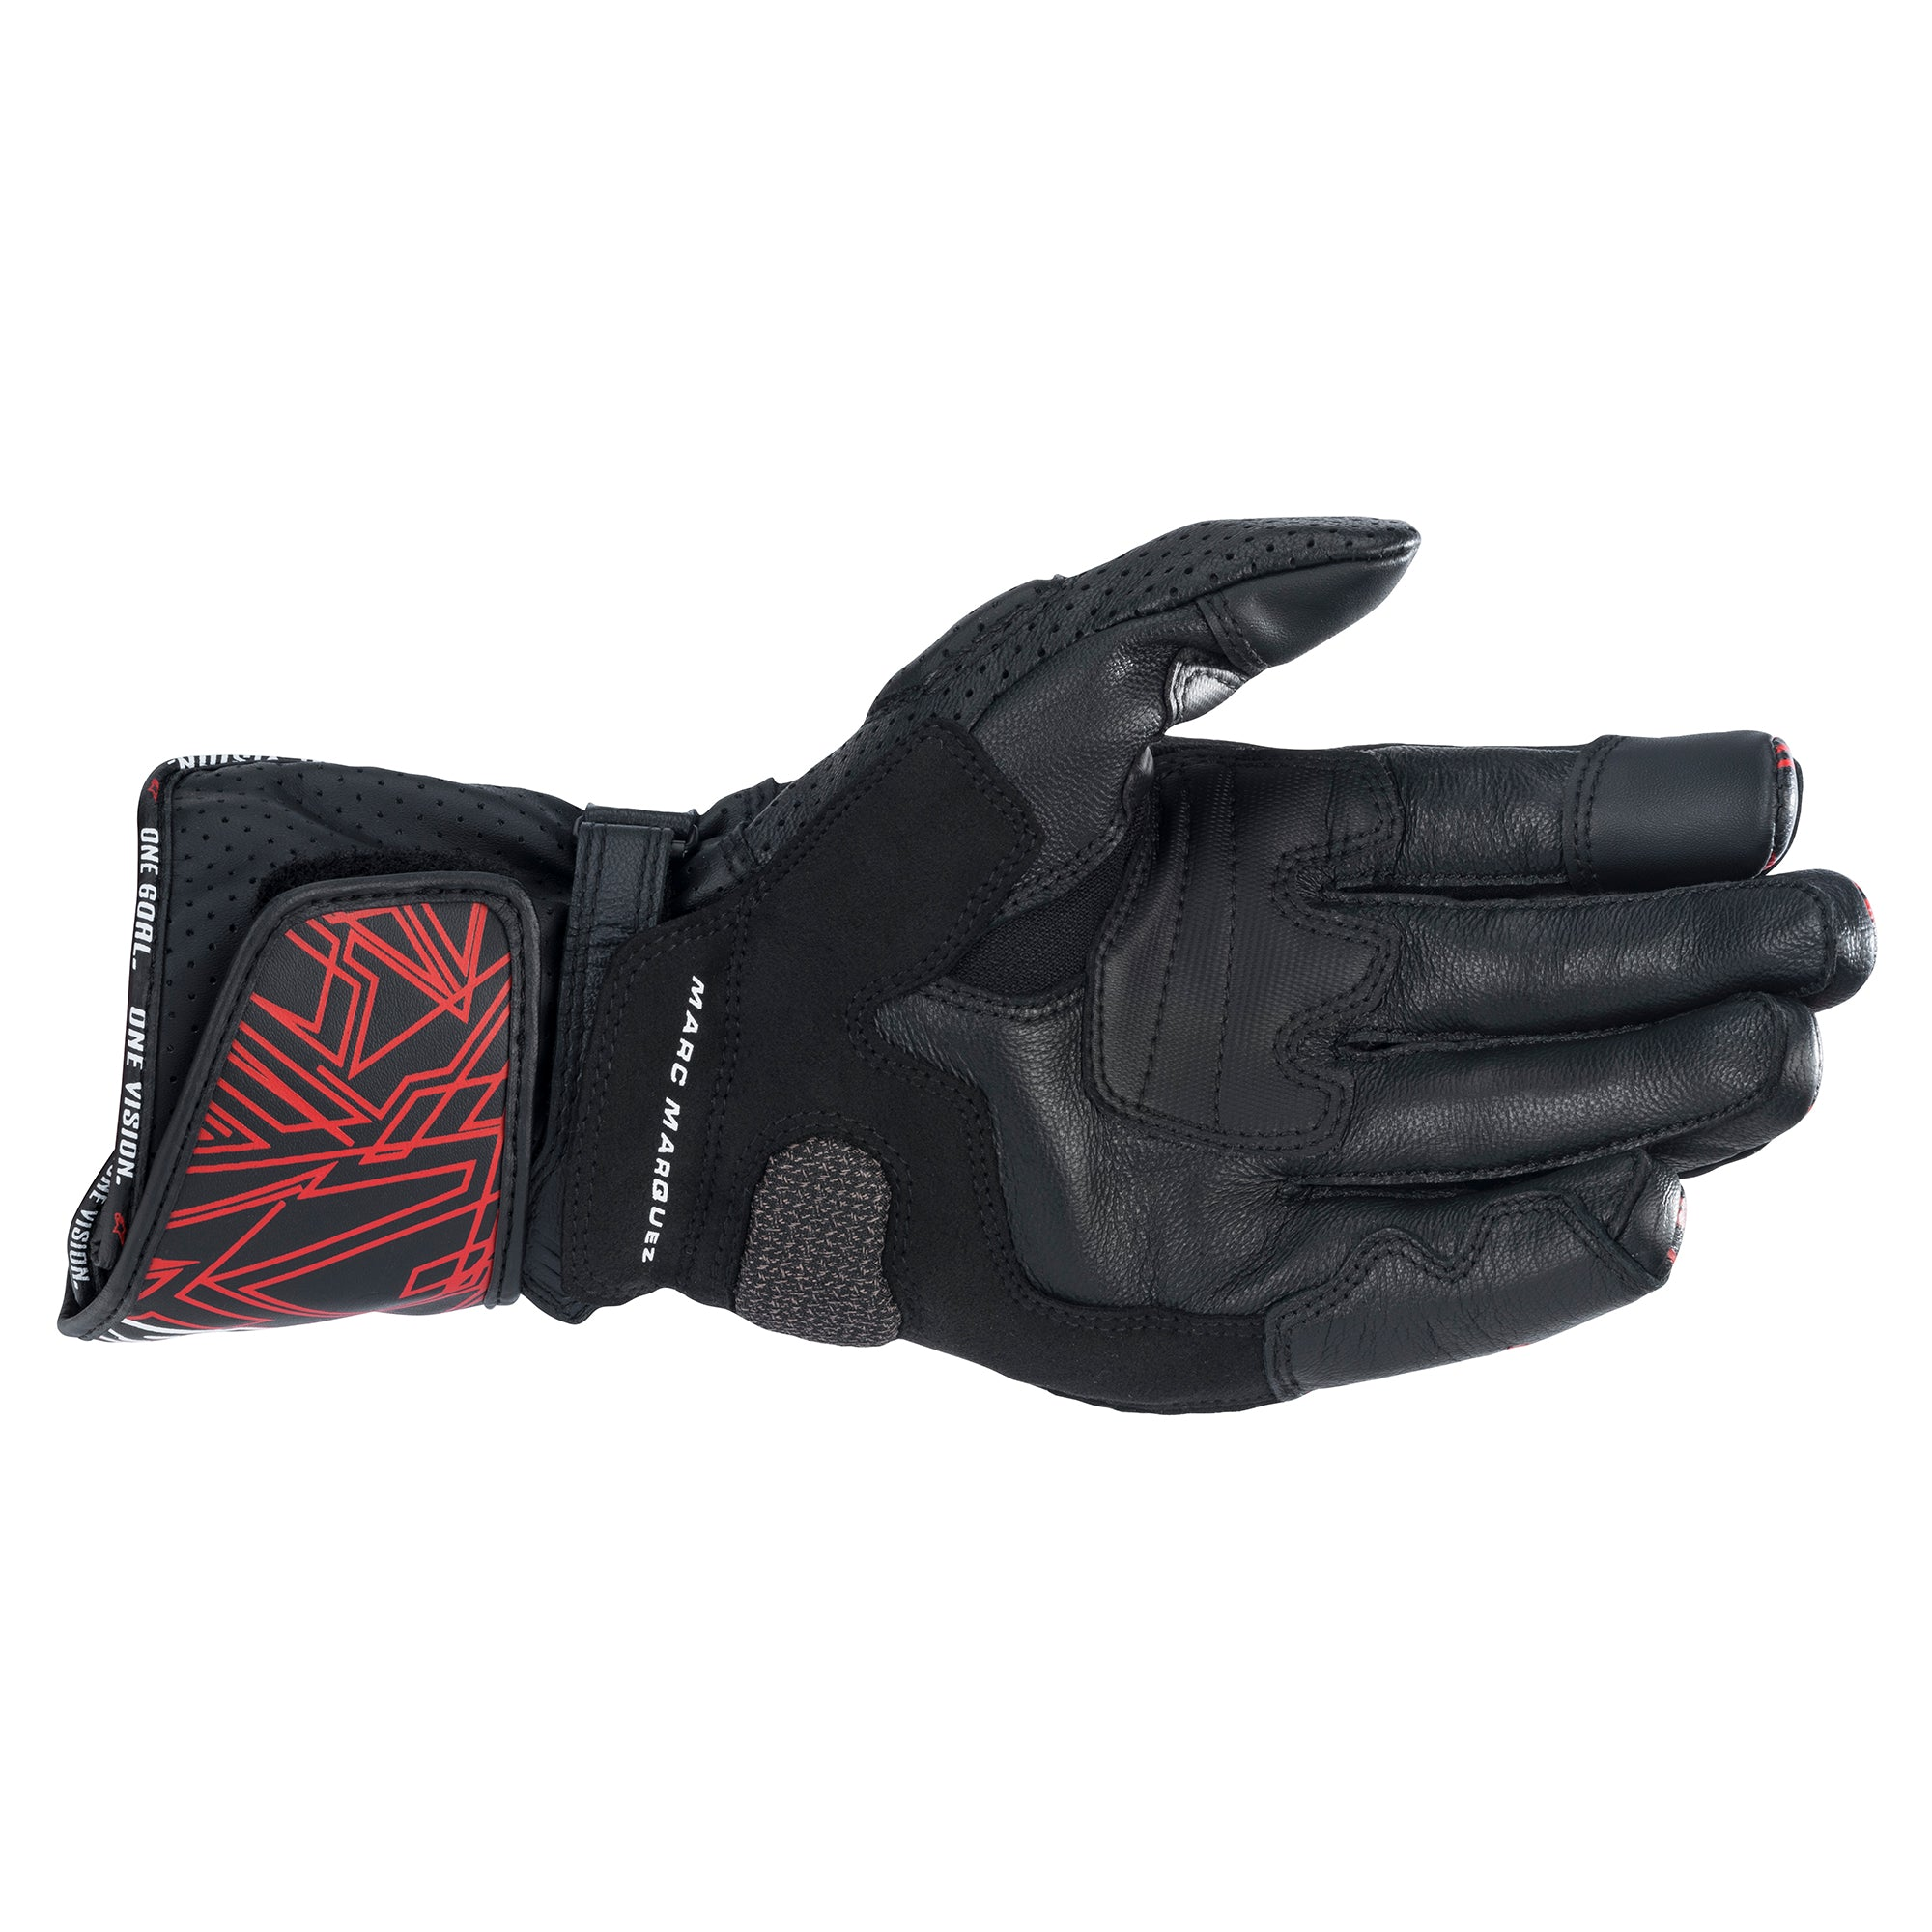 MM93 TWIN RING V2 LEATHER GLOVE